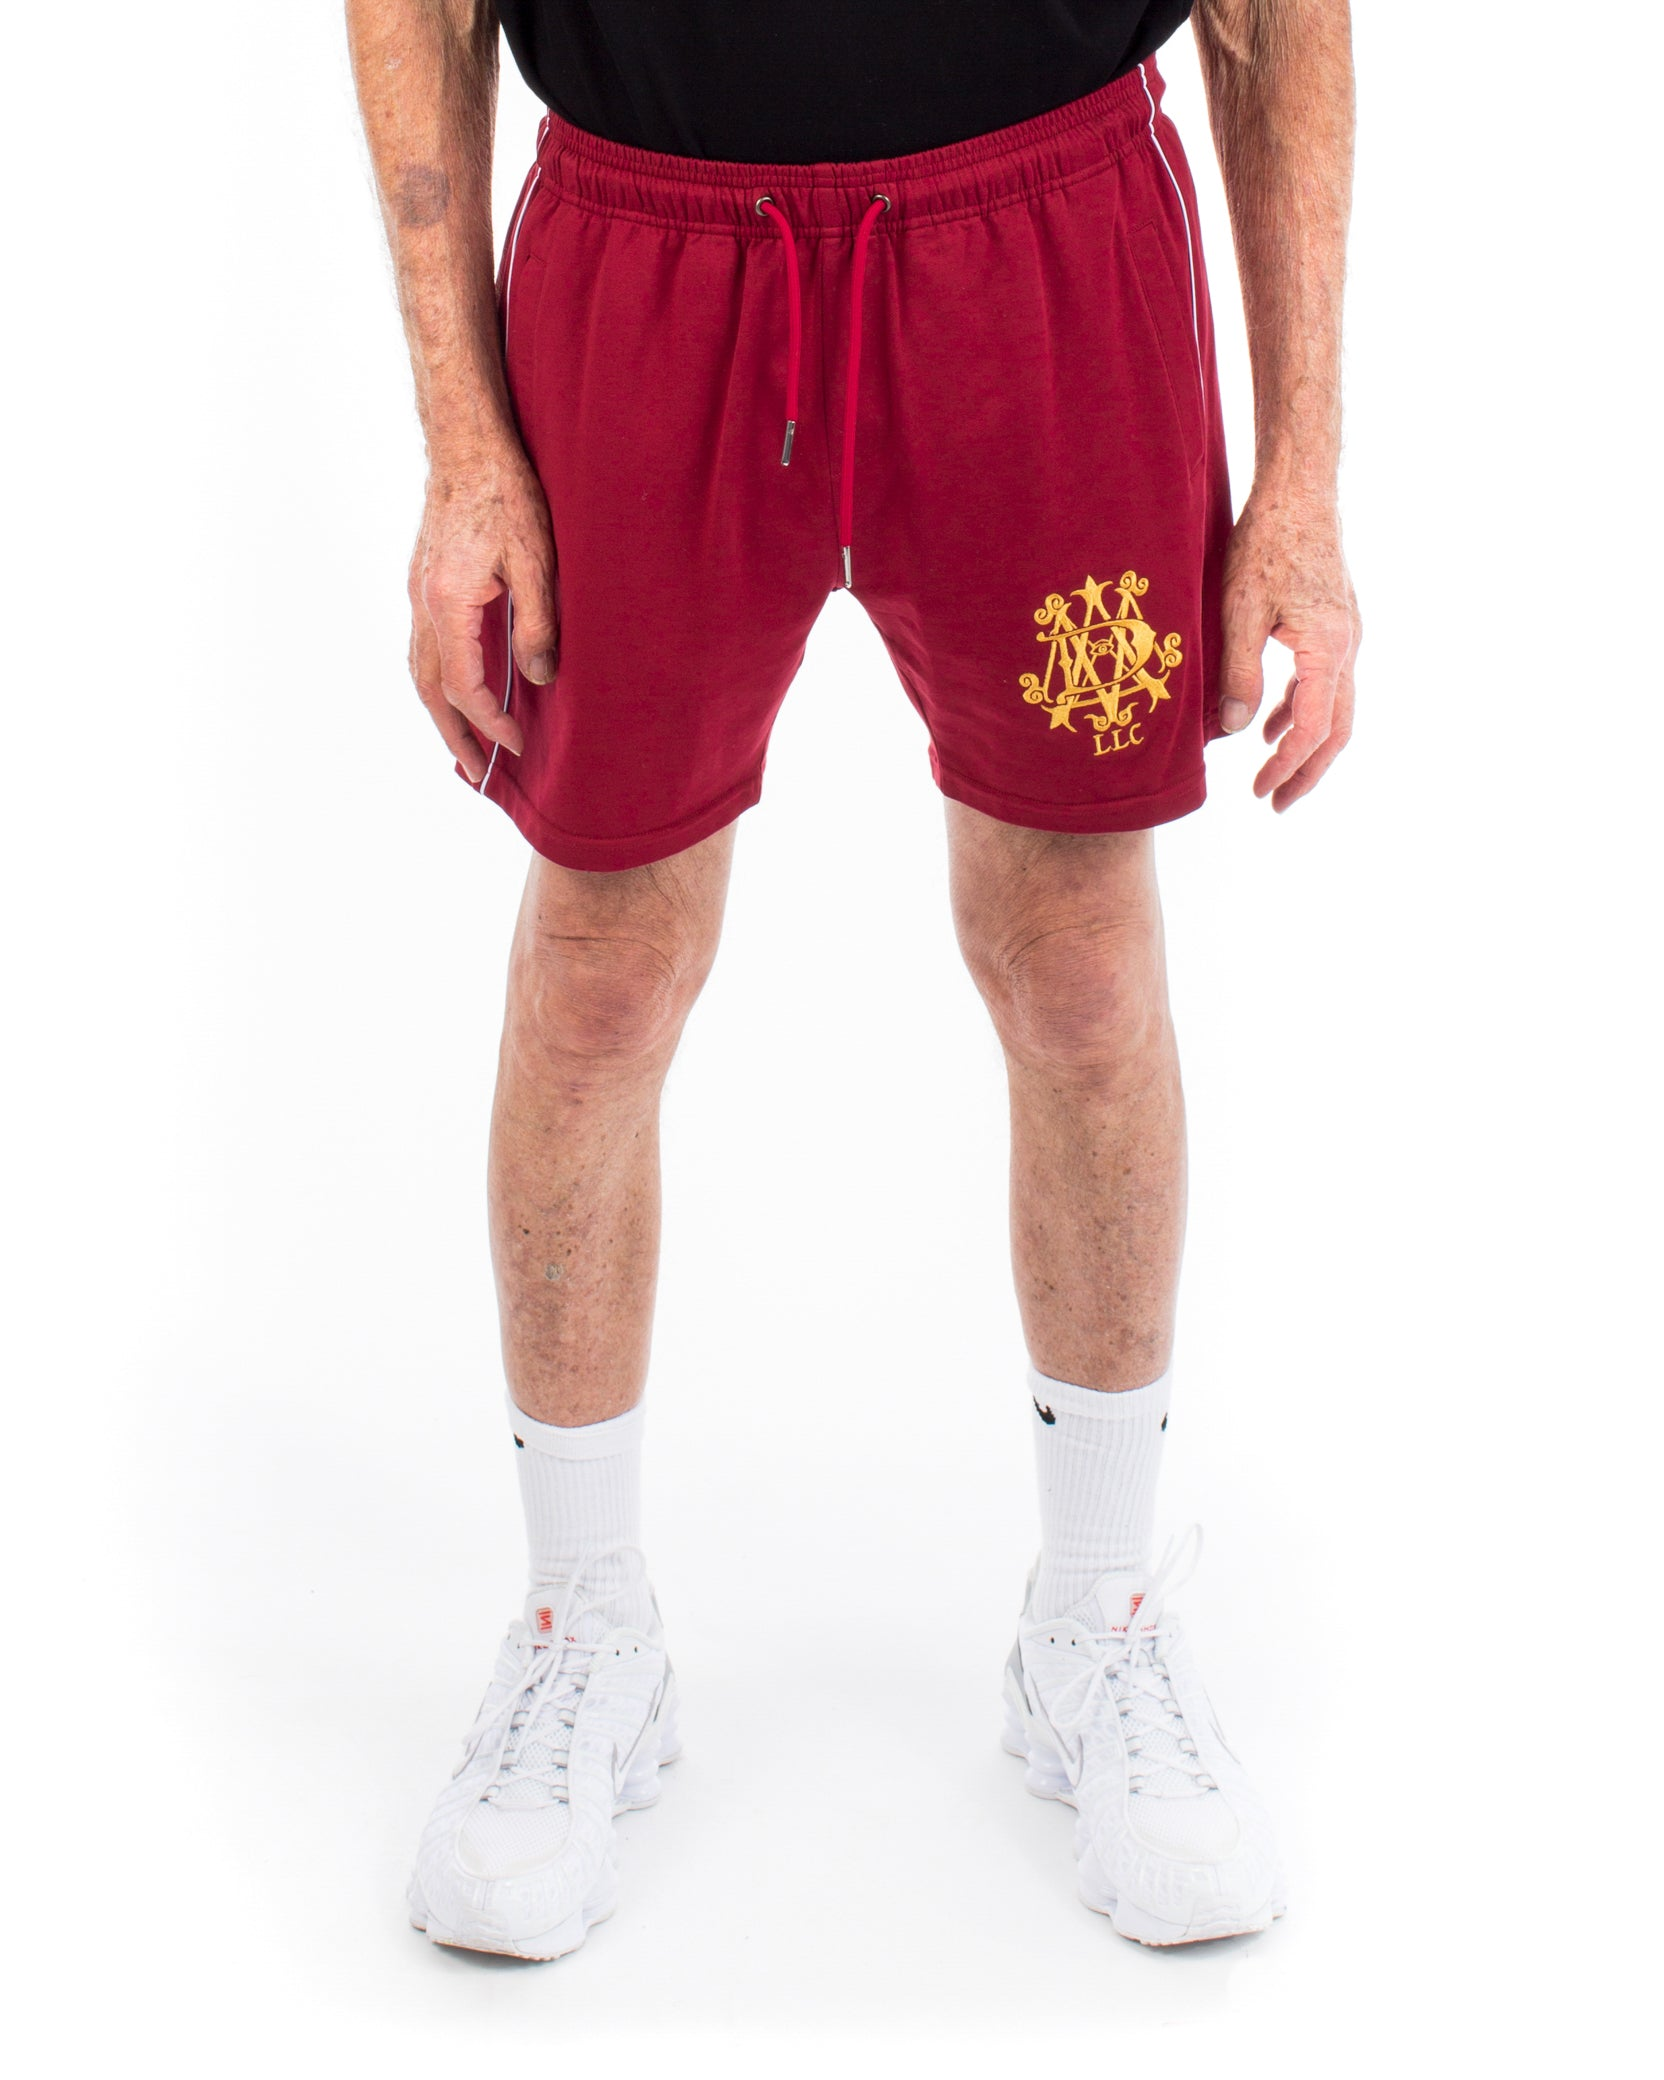 PIPING SHORT - BURGUNDY